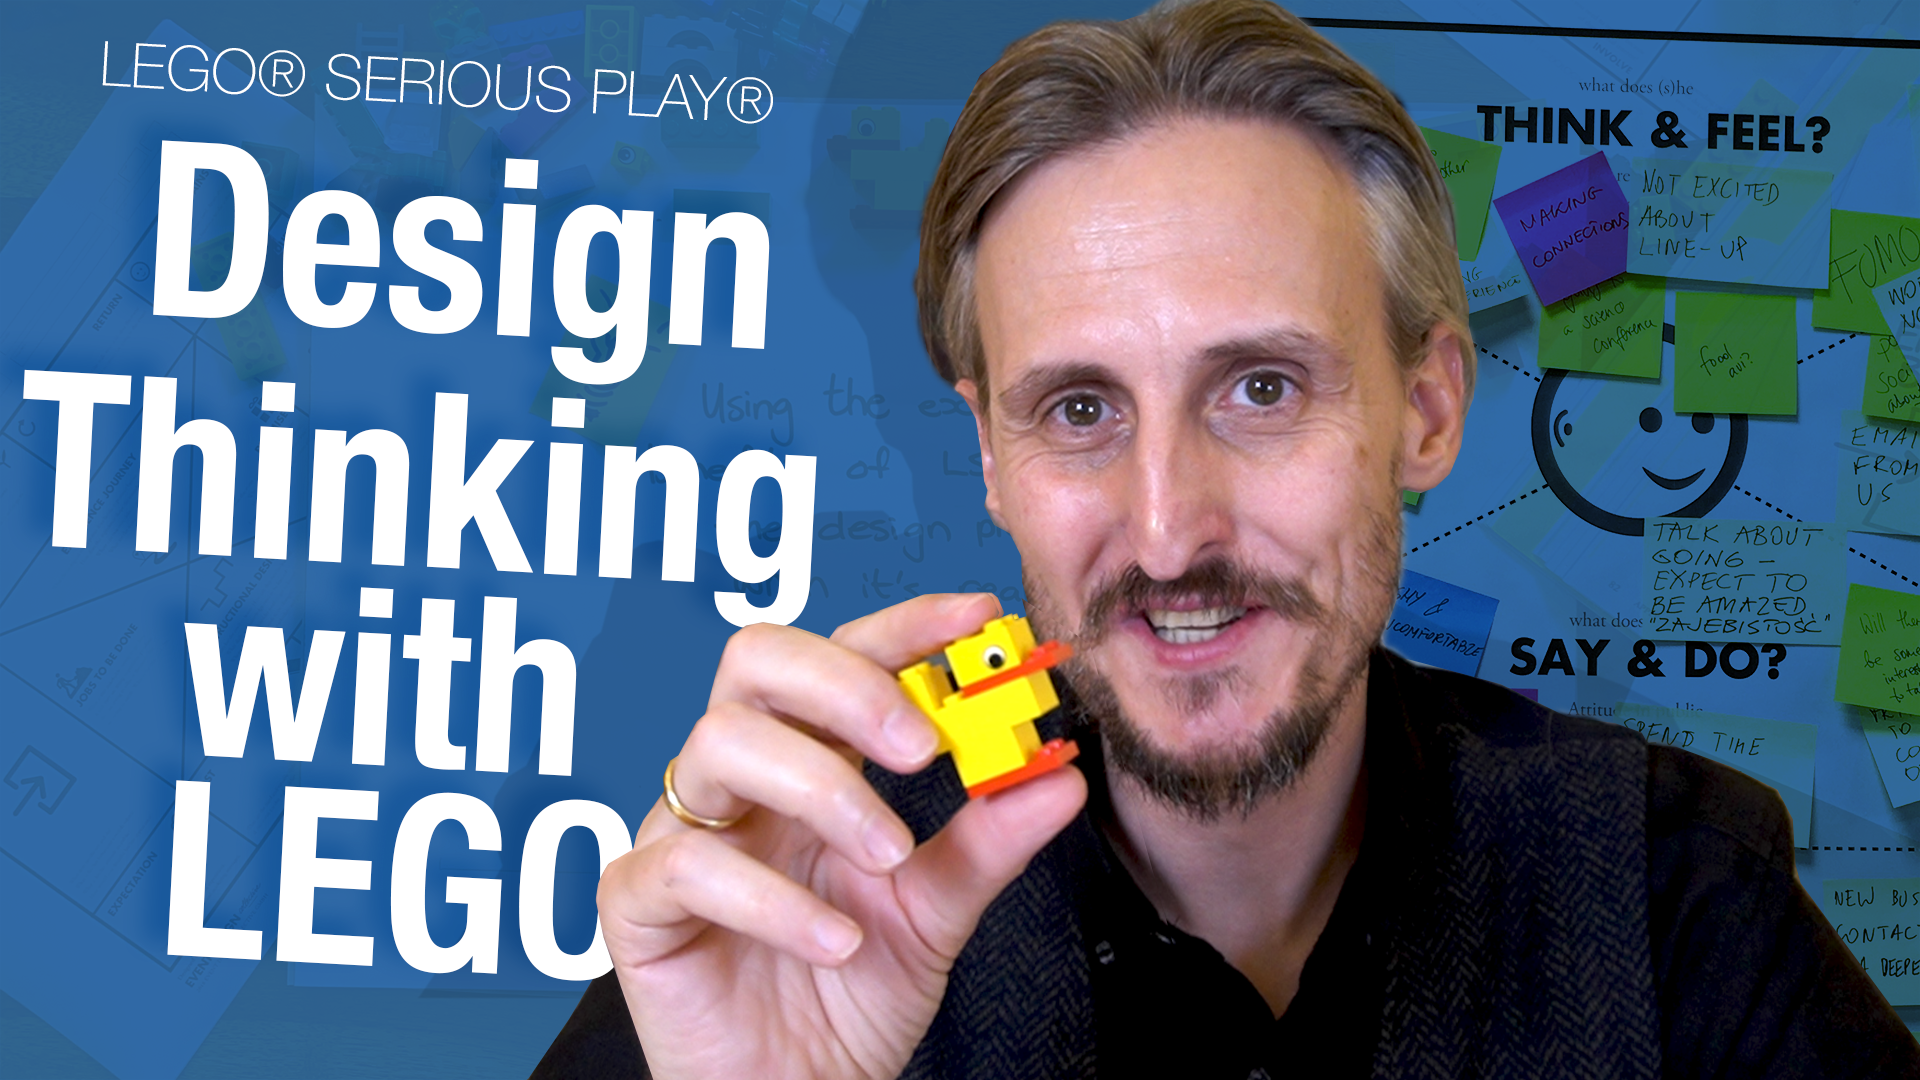 Using the experiential benefits of LEGO® SERIOUS PLAY® to slow the Design Thinking process